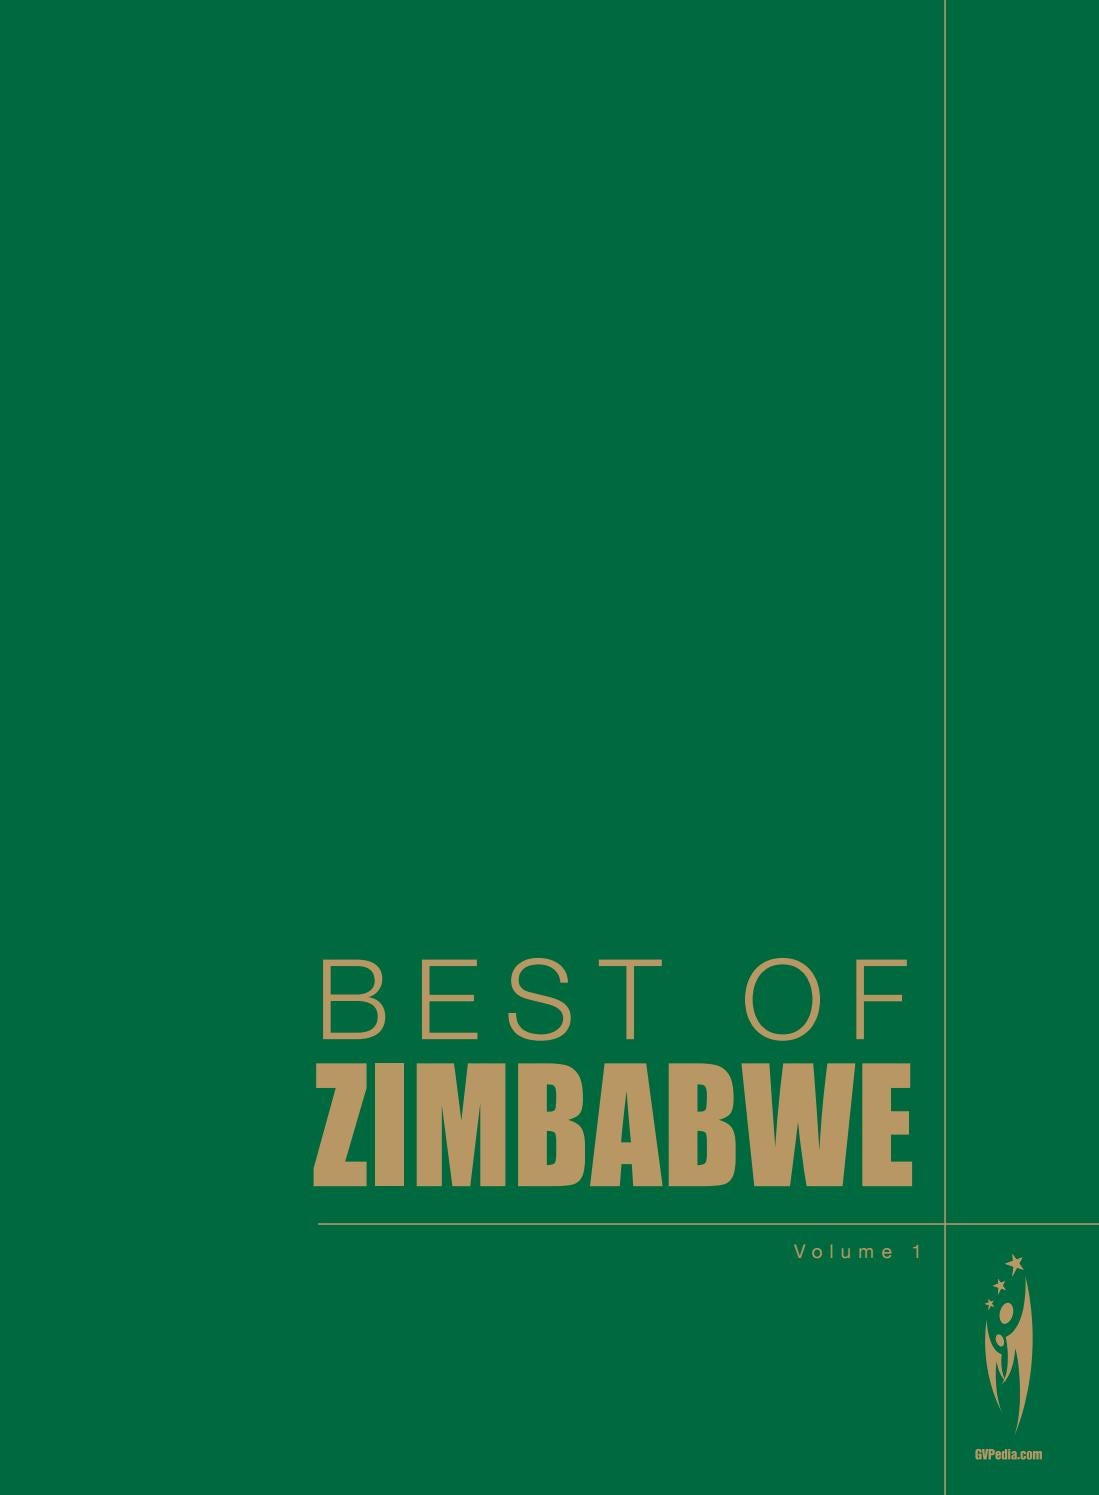 Best Of Zimbabwe Volume 1 By Sven Boermeester Issuu 2008 Mazda 5 Fuse Box Assembly